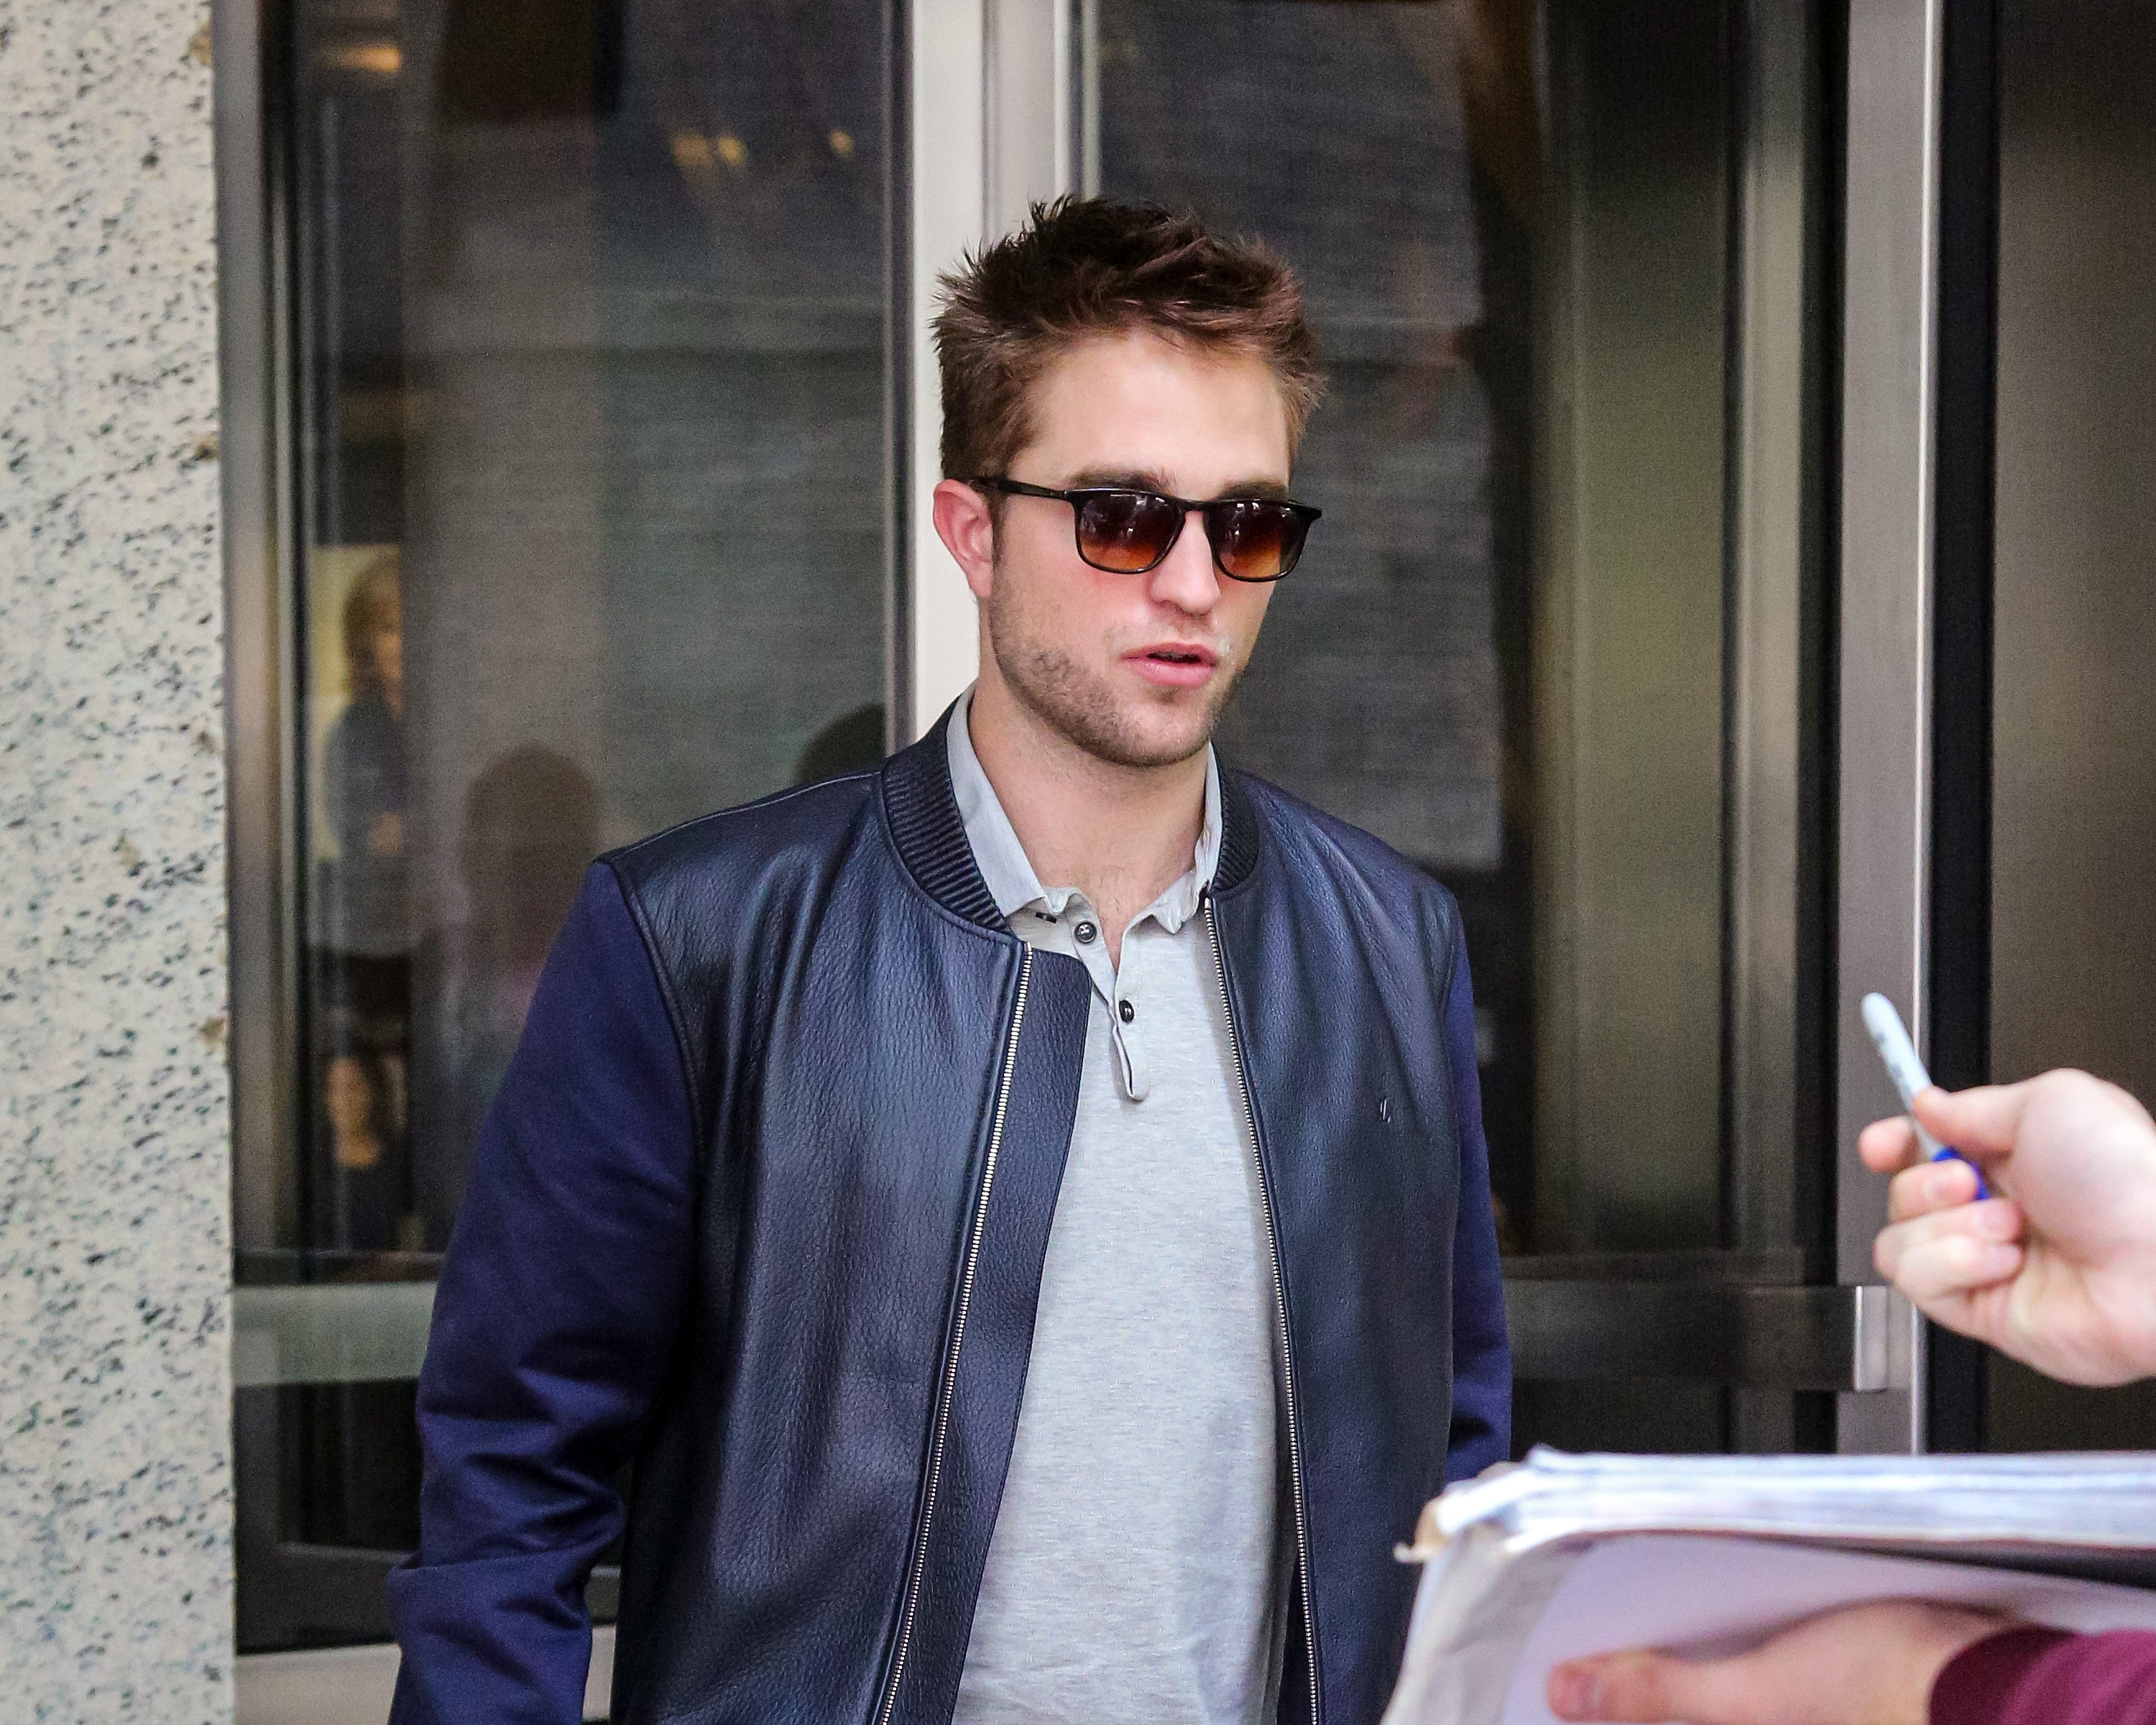 Fotos de Robert Pattinson em Nova York